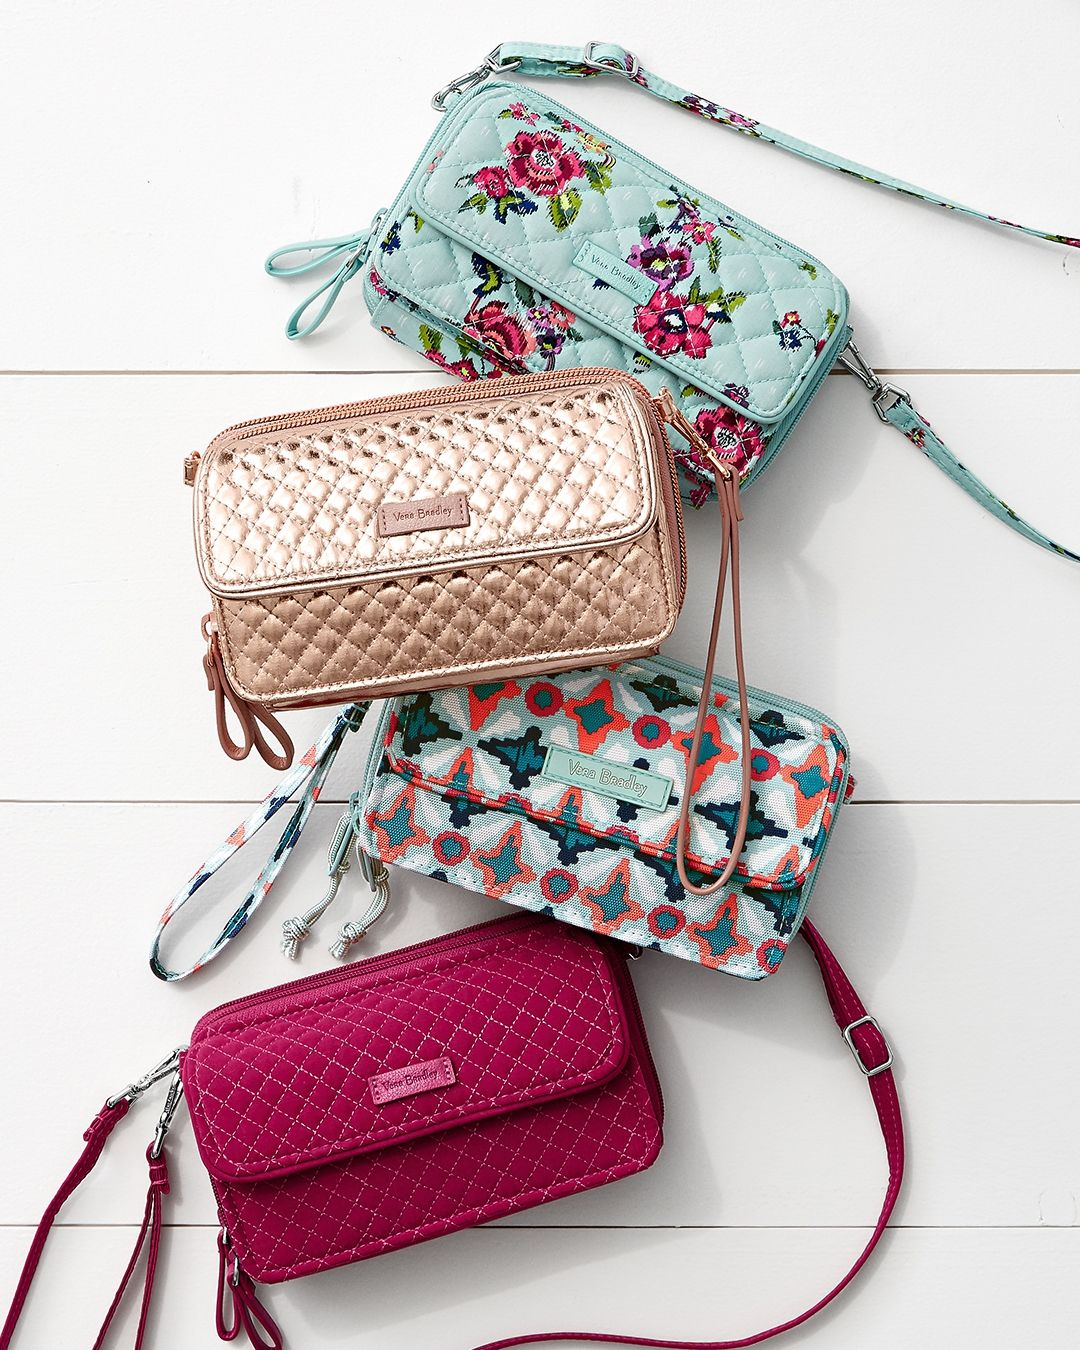 All in One Crossbody Bag in Water Bouquet, Rose Gold Shimmer, Water Geo and  Passion Pink   Summer 2018 11971f9e08